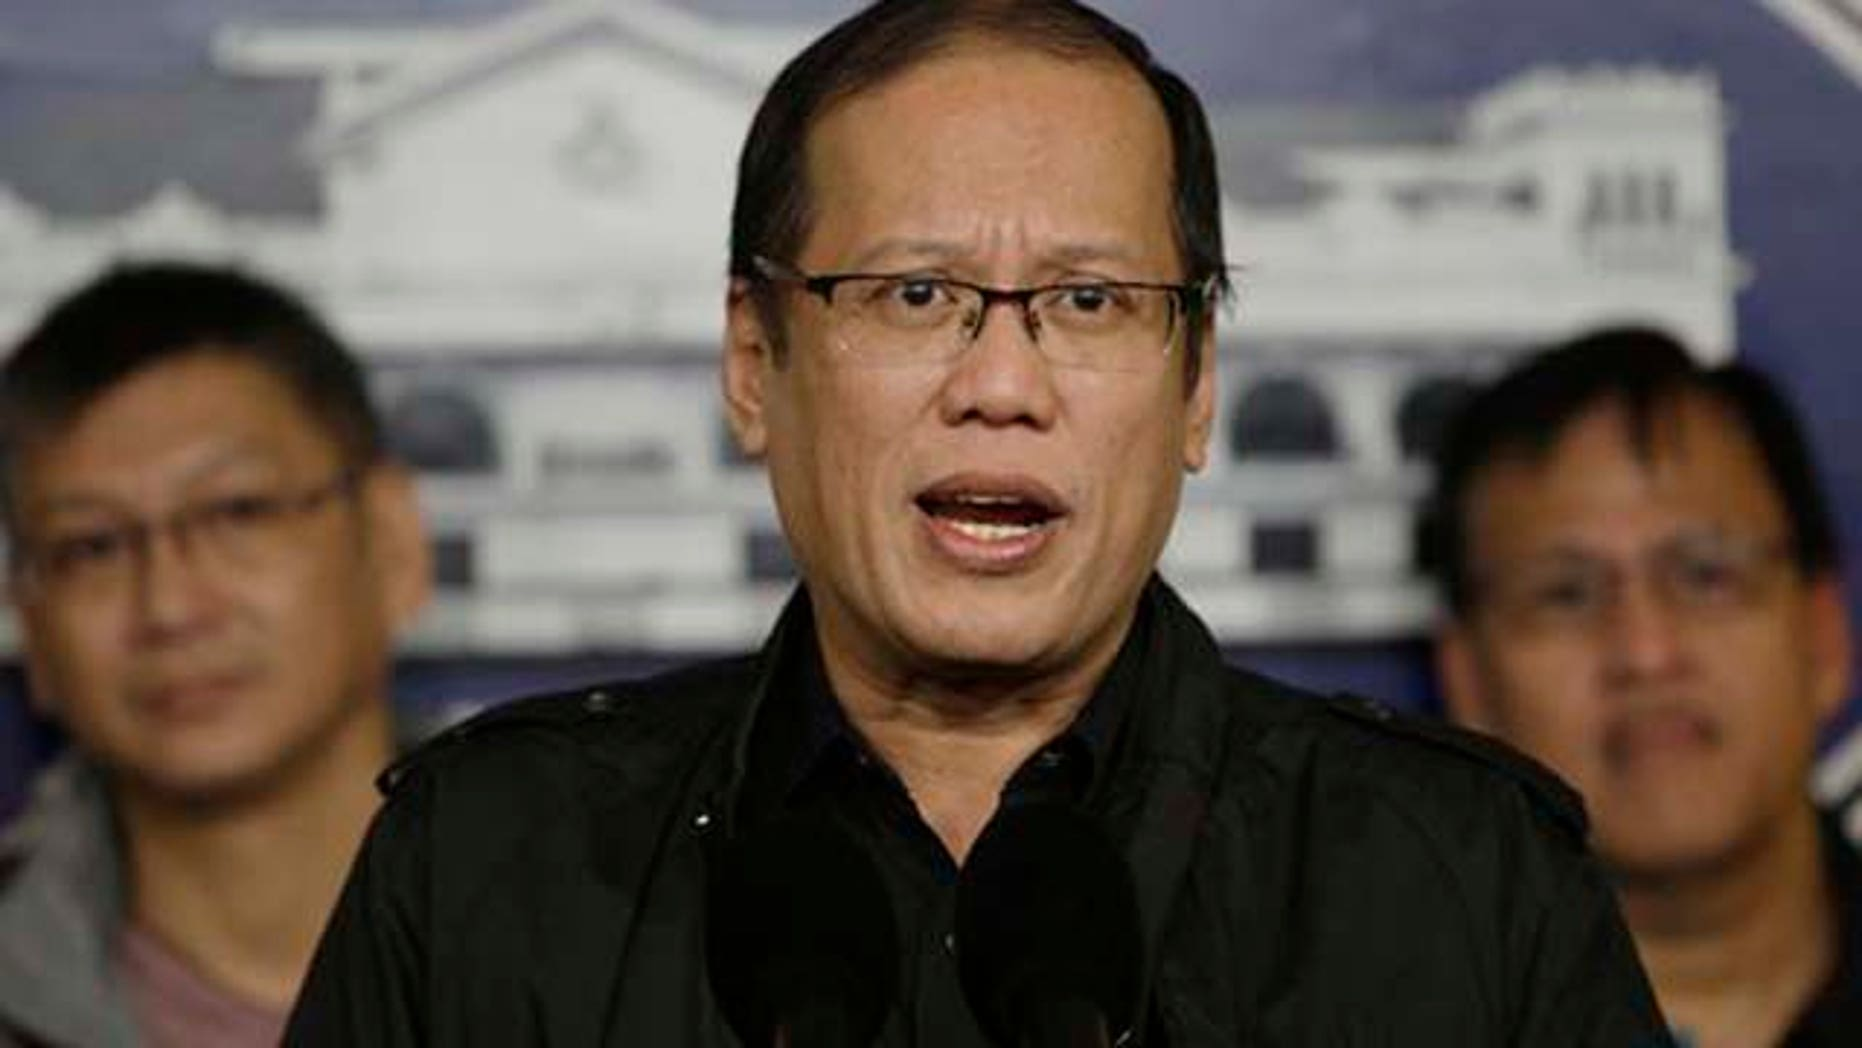 January 8, 2012: Philippine President Benigno Aquino III, center, talks during a hastily called press conference at the Malacanang palace in Manila, Philippines.